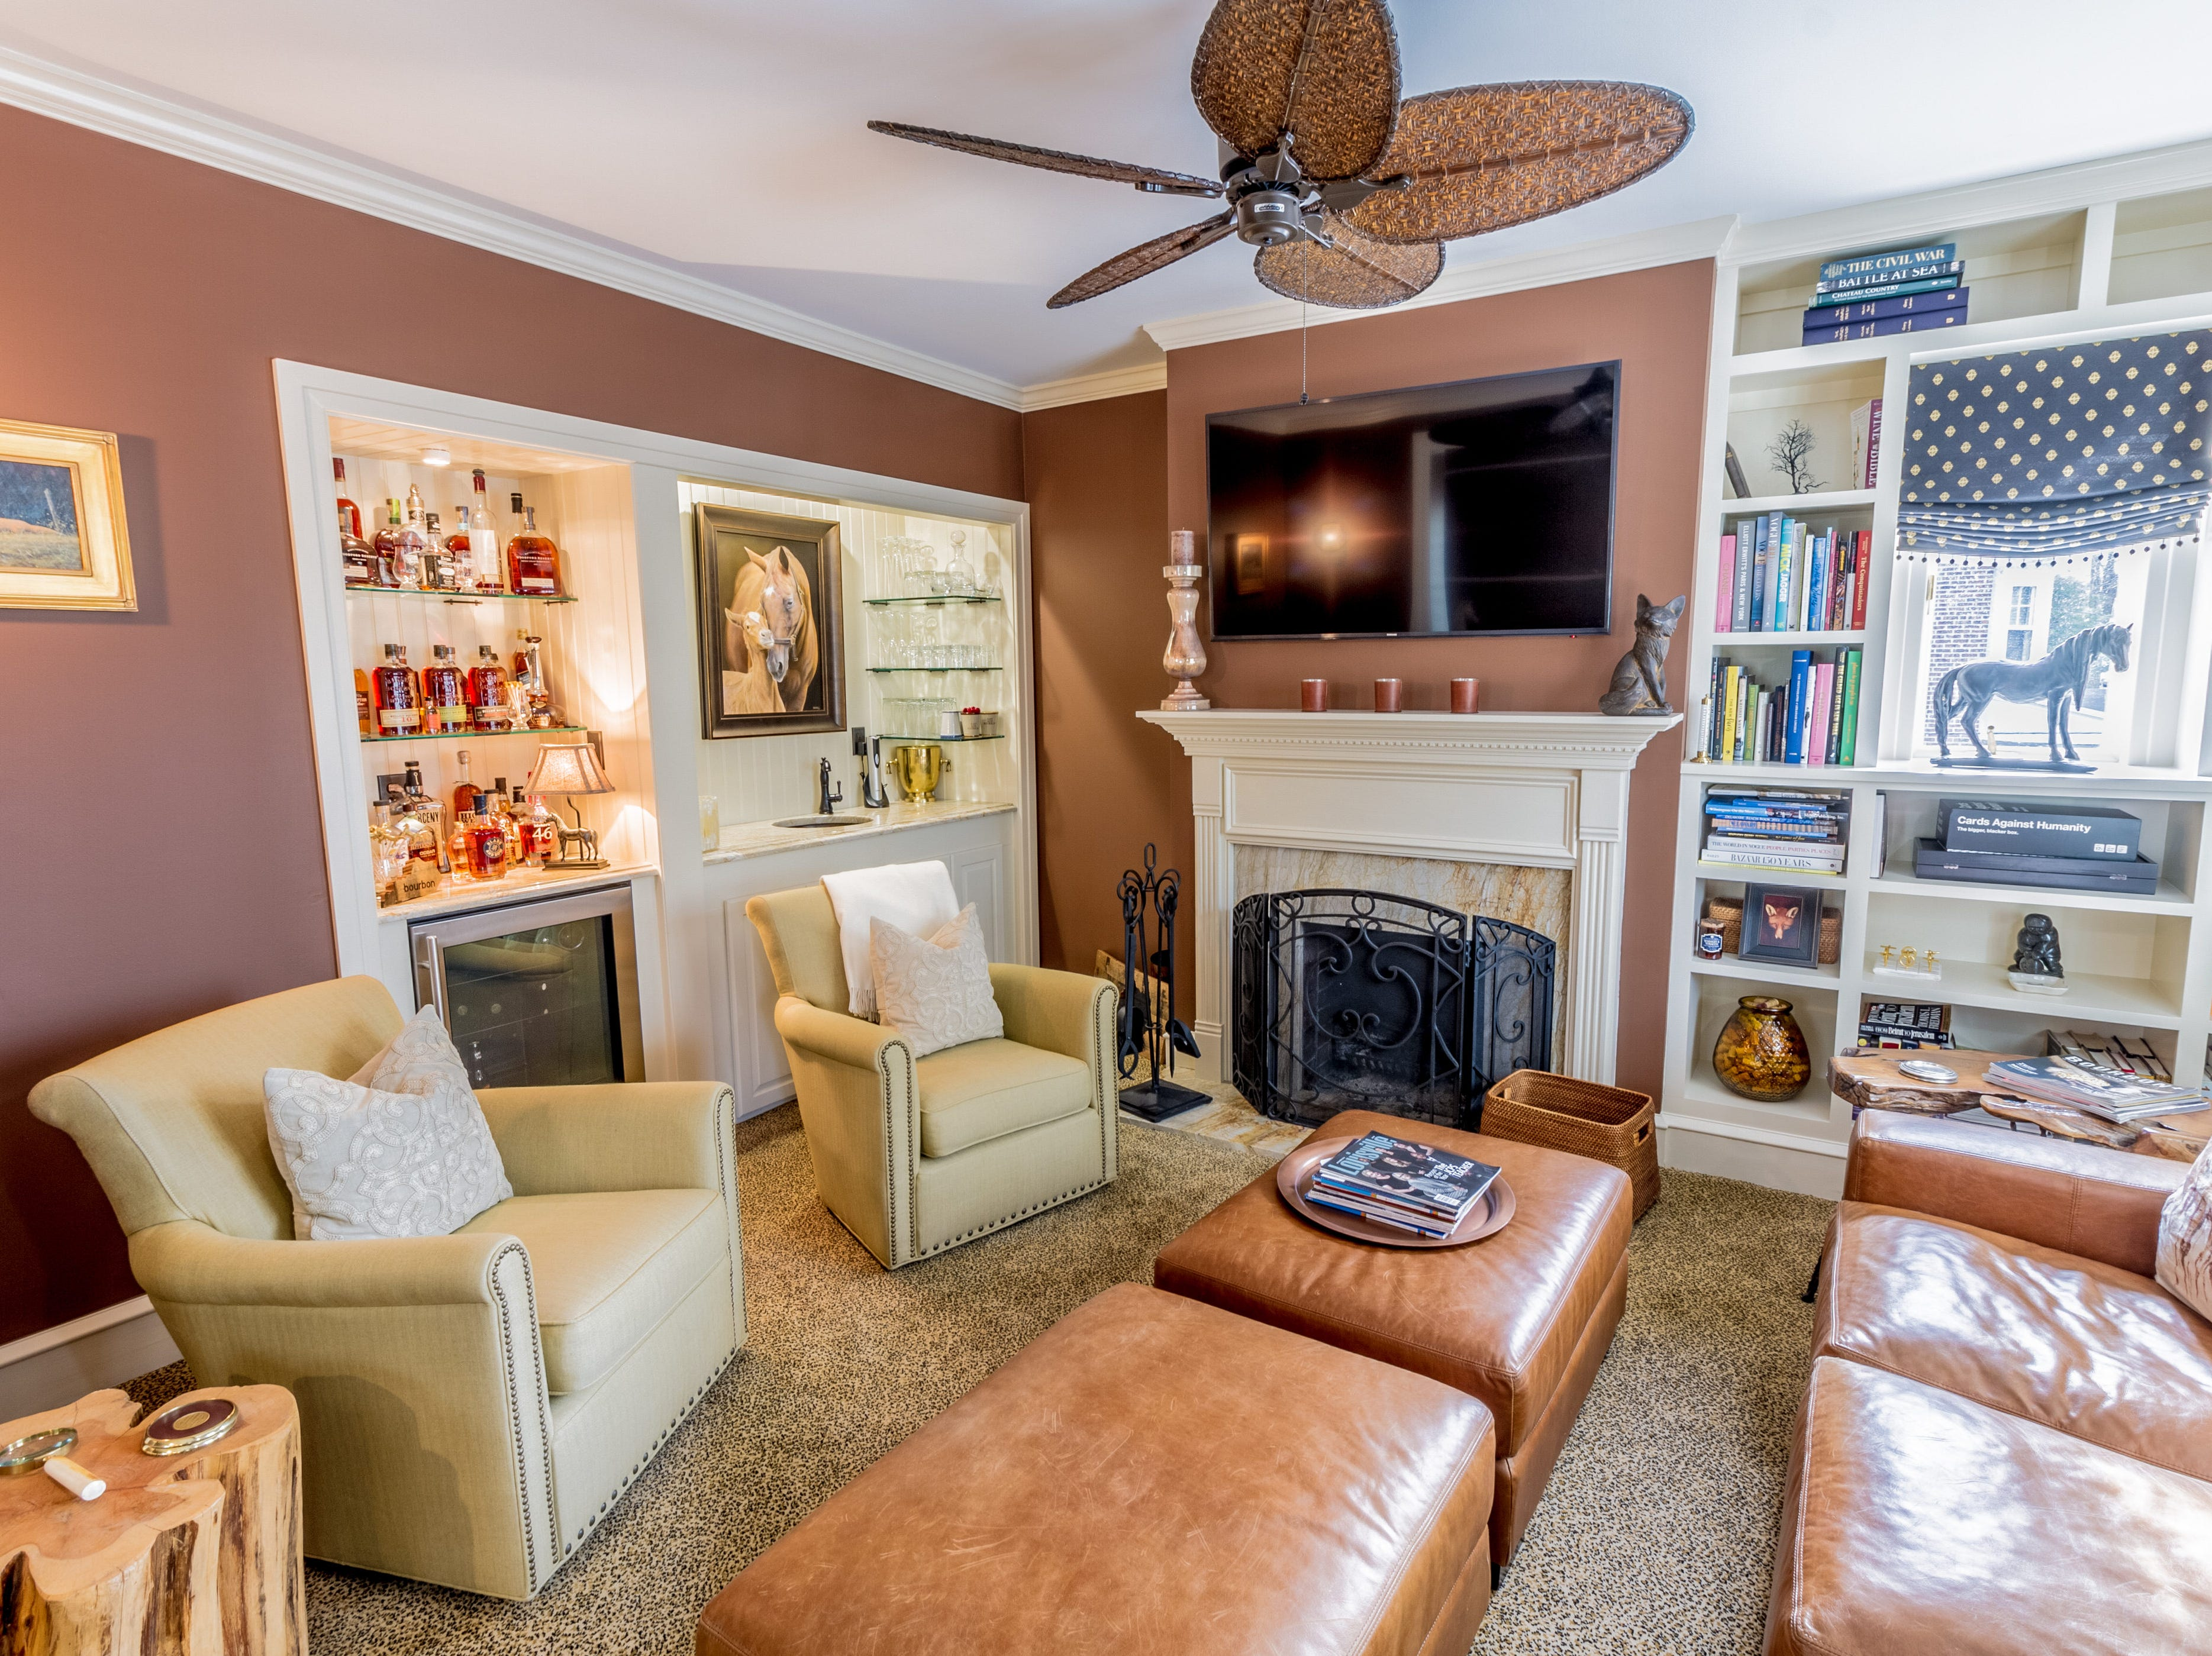 The family room in 1100 N. Rodney St.  has a fireplace, bar and wine fridge and is decorated in a bourbon theme that honors the owner's Kentucky roots.